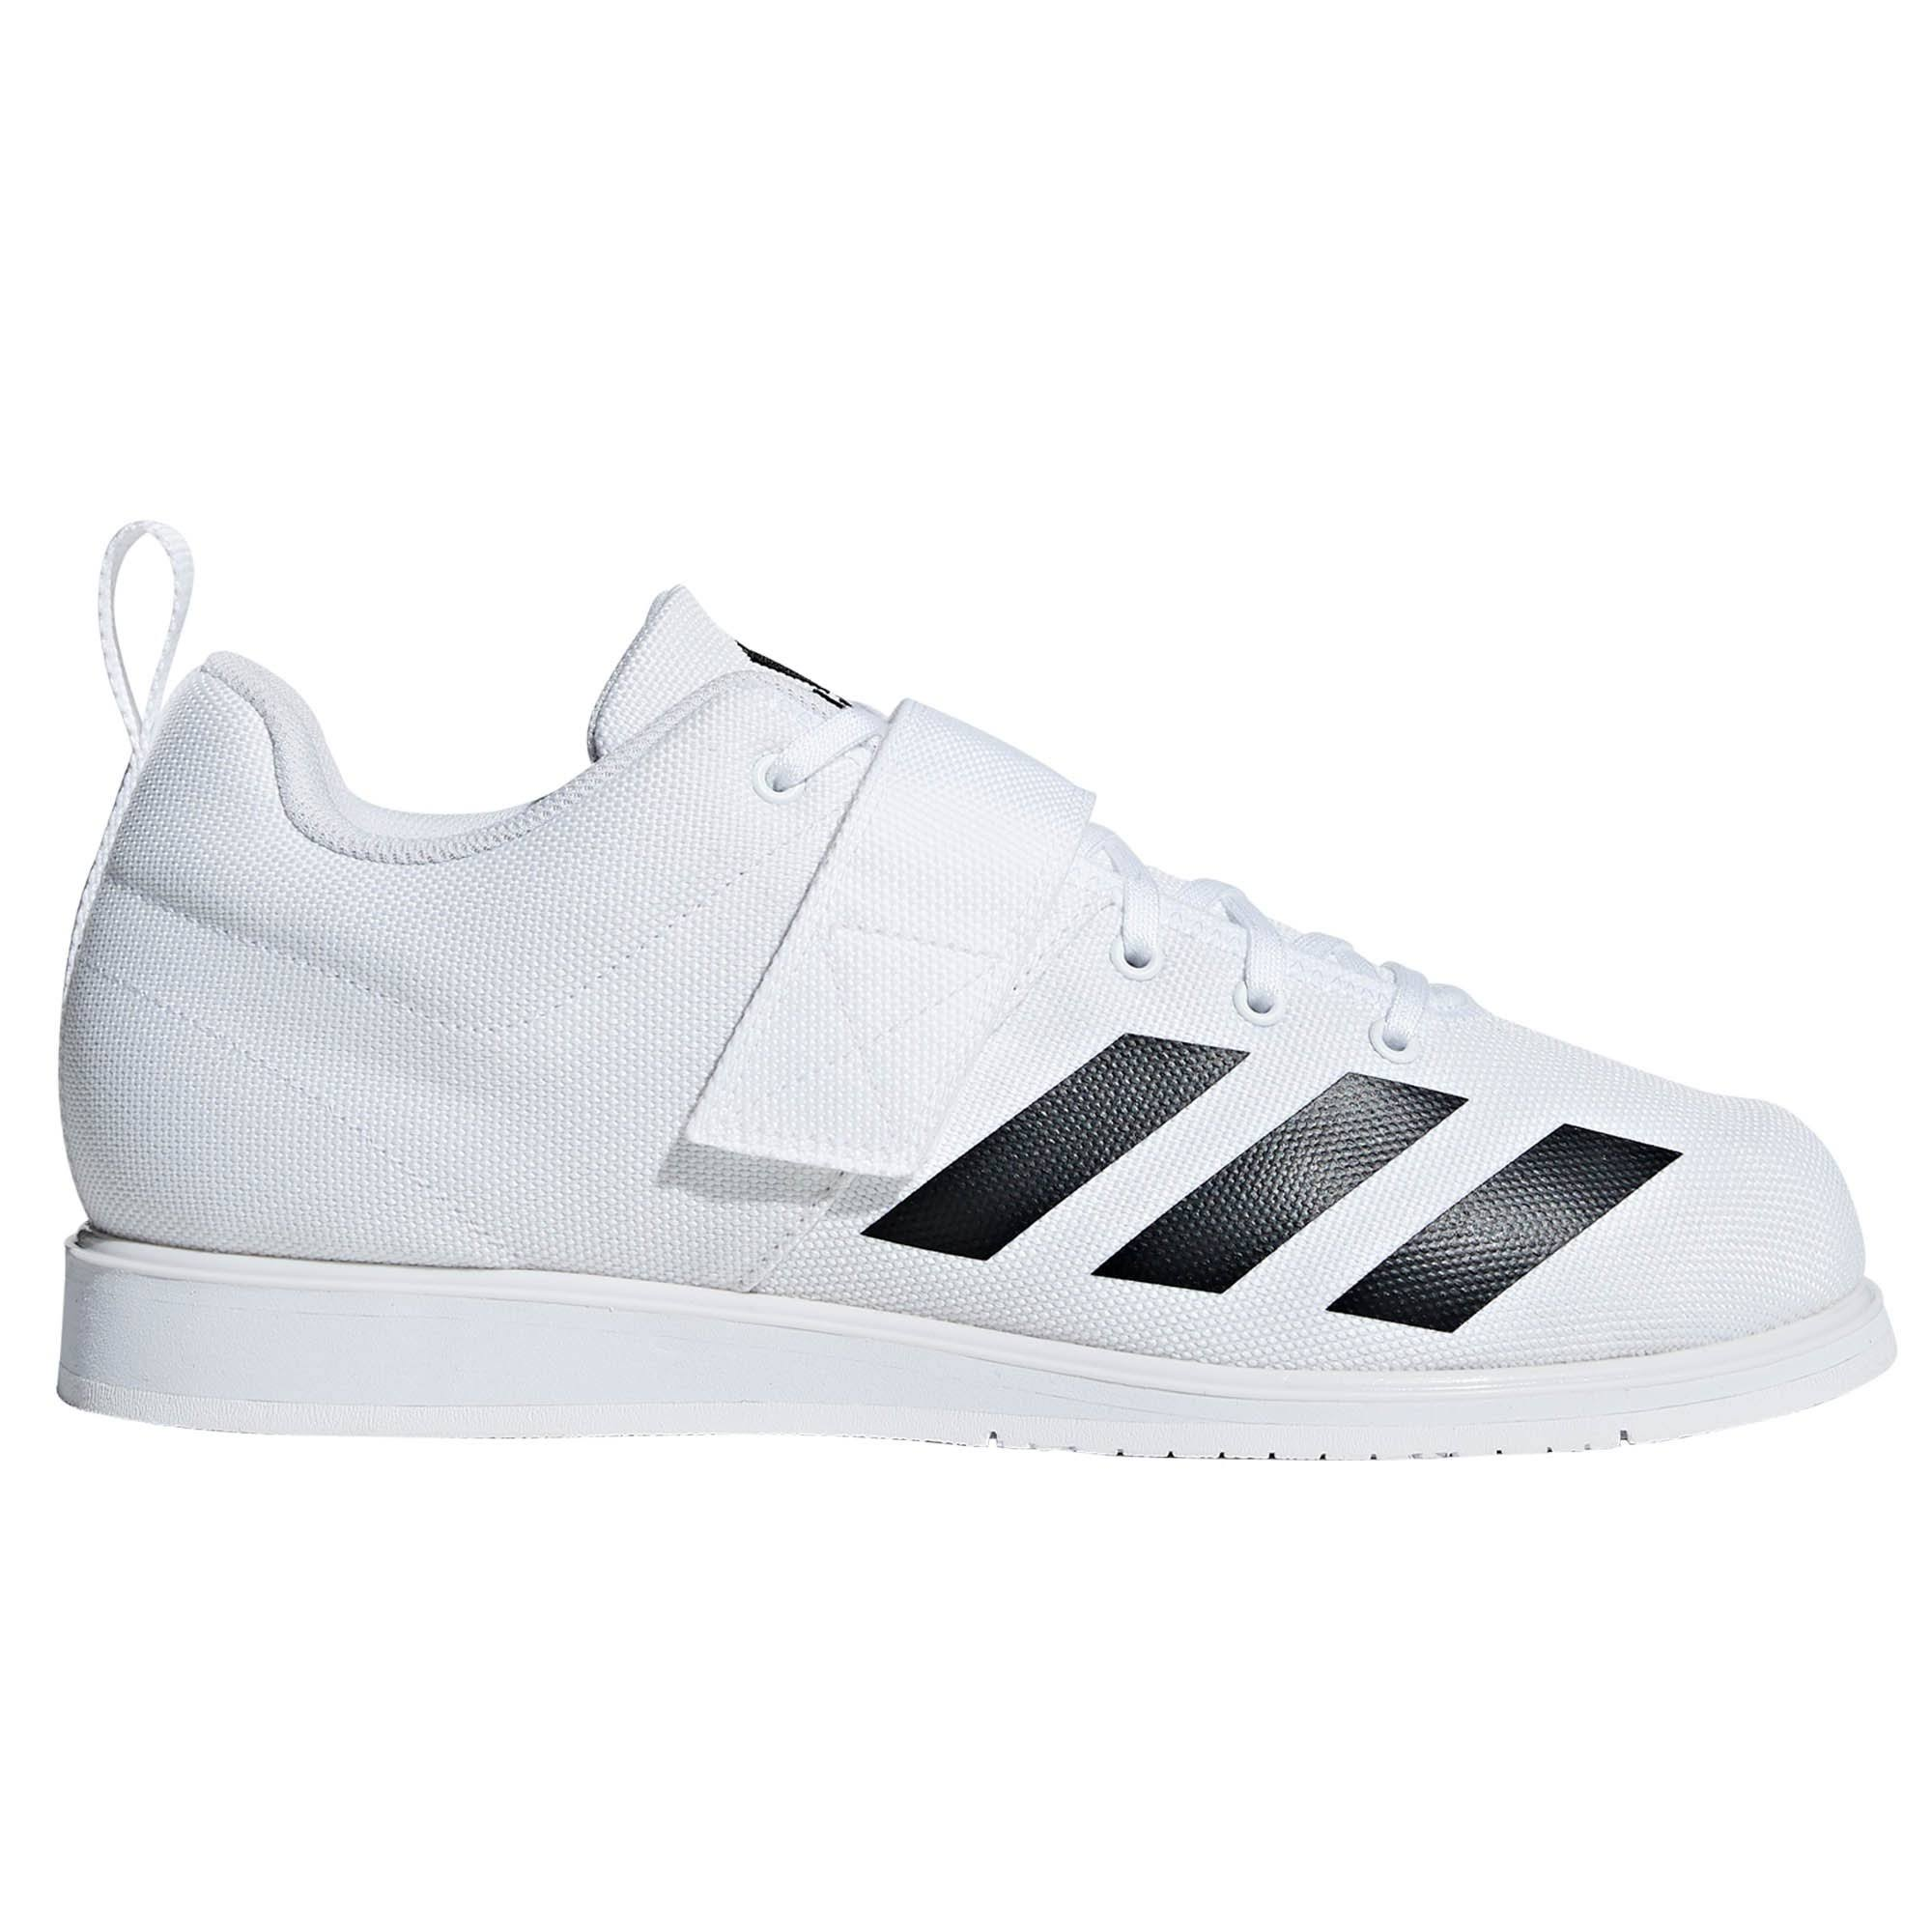 Adidas Powerlift 4 Weightlifting Shoes - White - 10